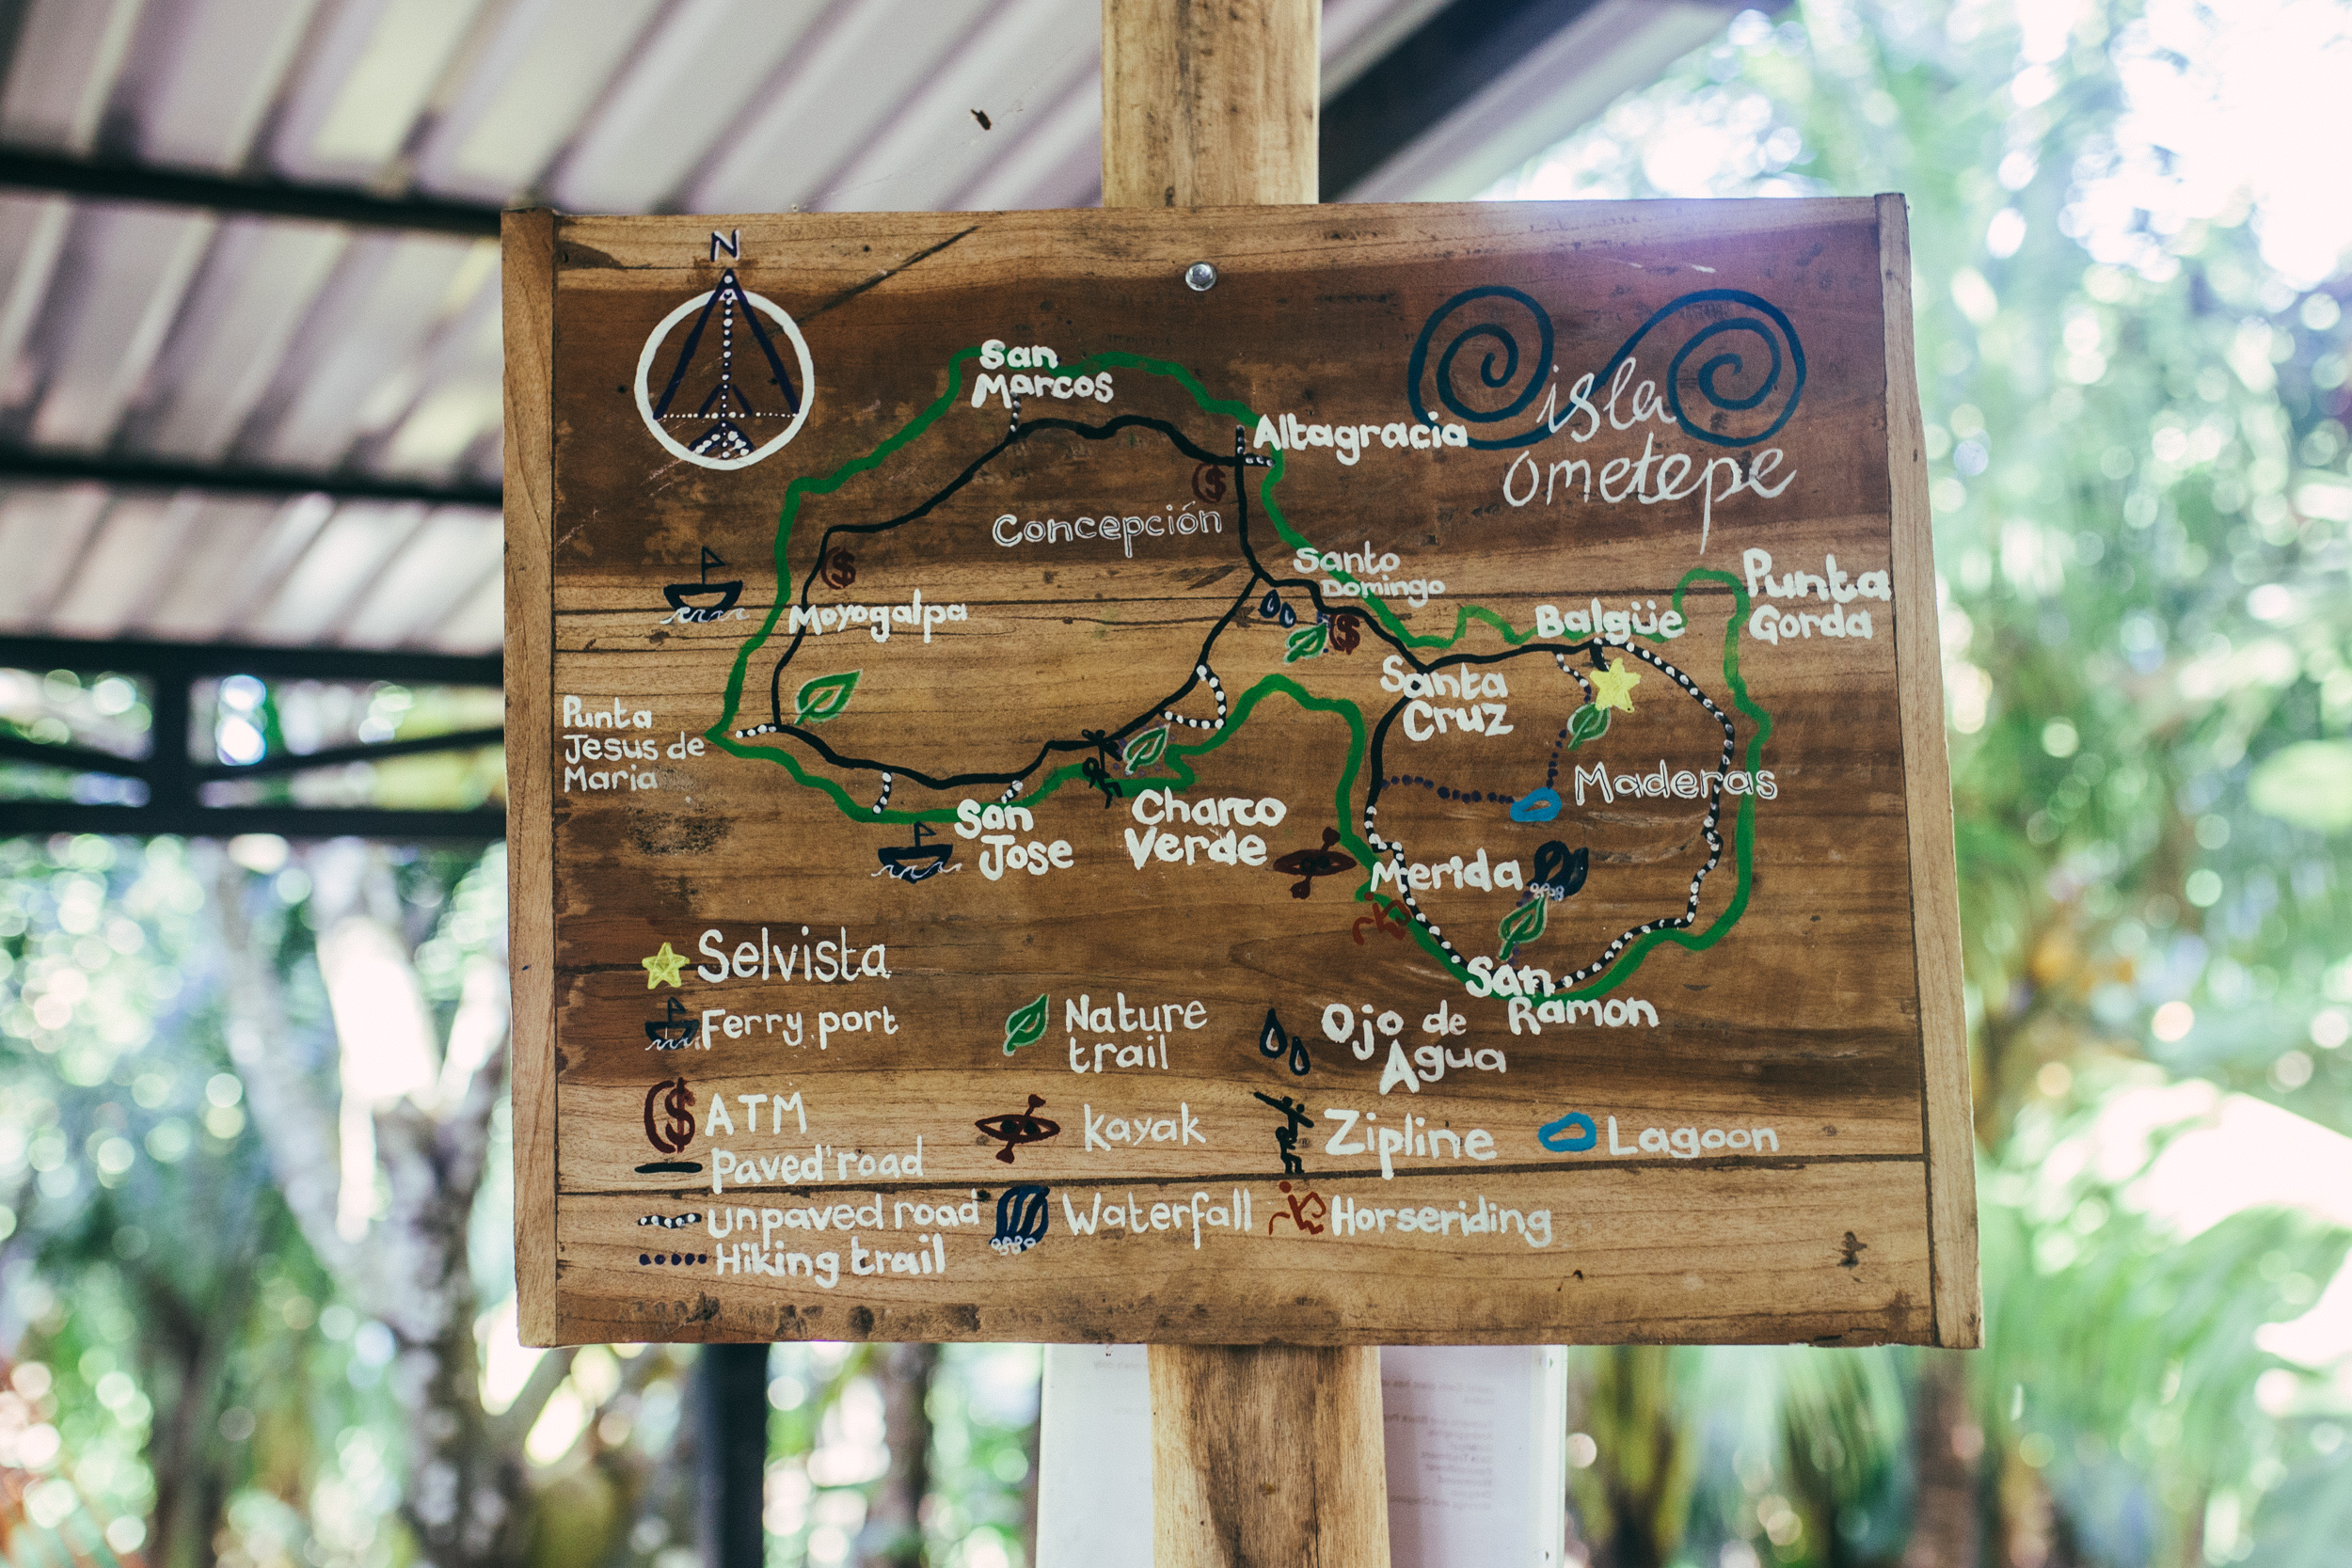 ometepe island map of things to do and turist highlights fromSelvista guesthouse